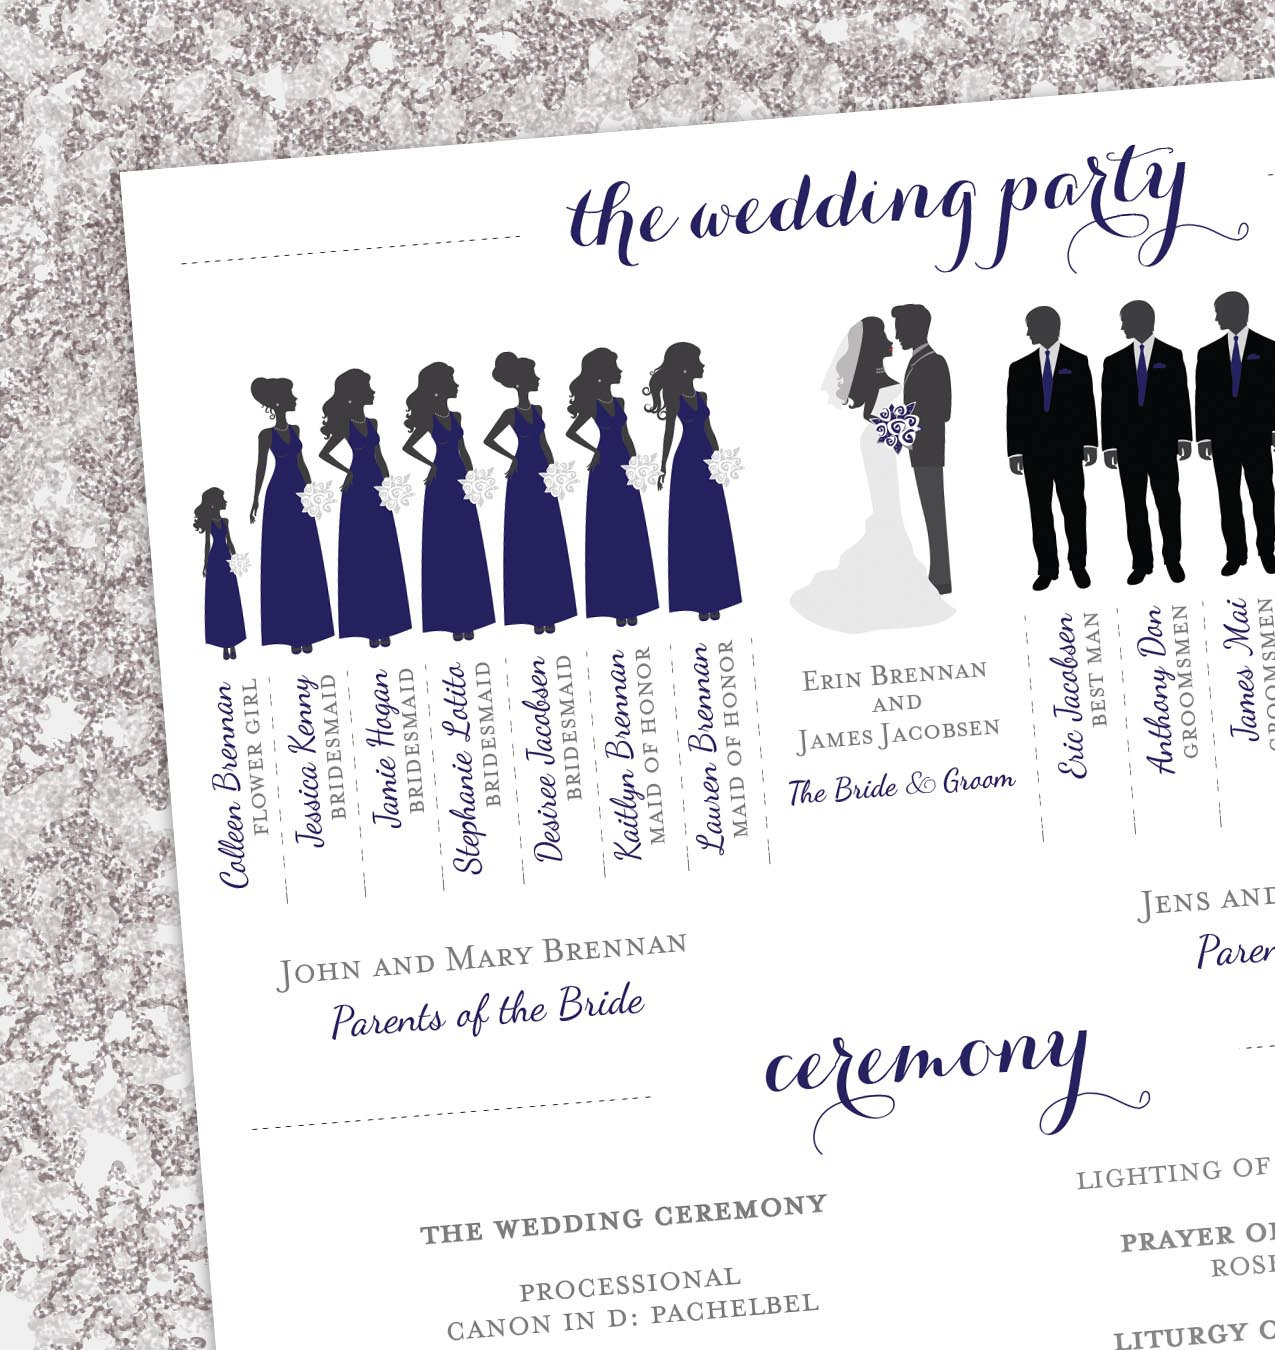 Wedding Party Silhouette Clip .-Wedding Party Silhouette Clip .-10